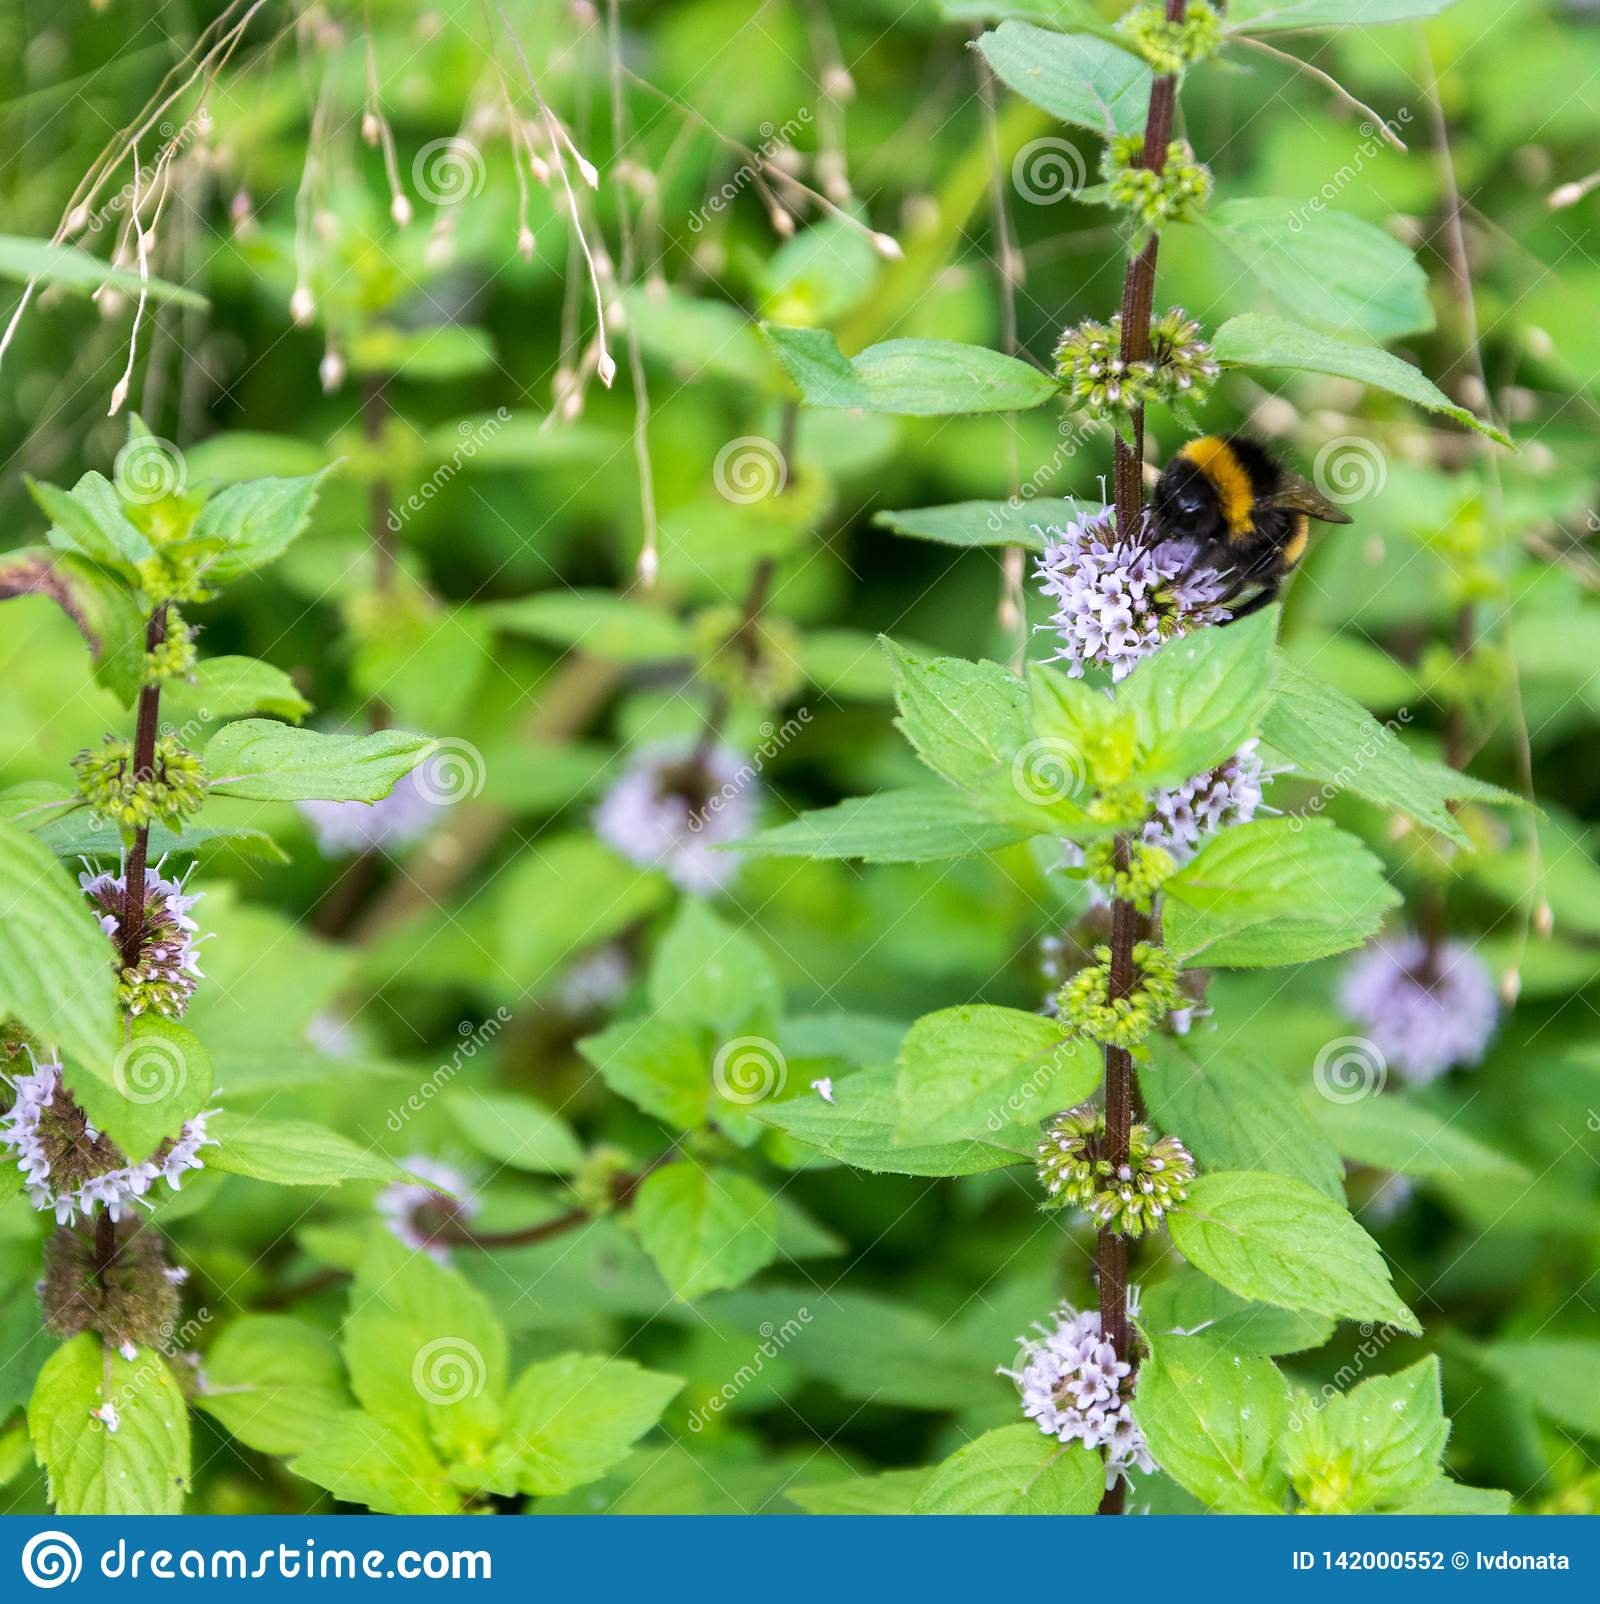 A bumblebee collects a nectar from a blue peppermint flower